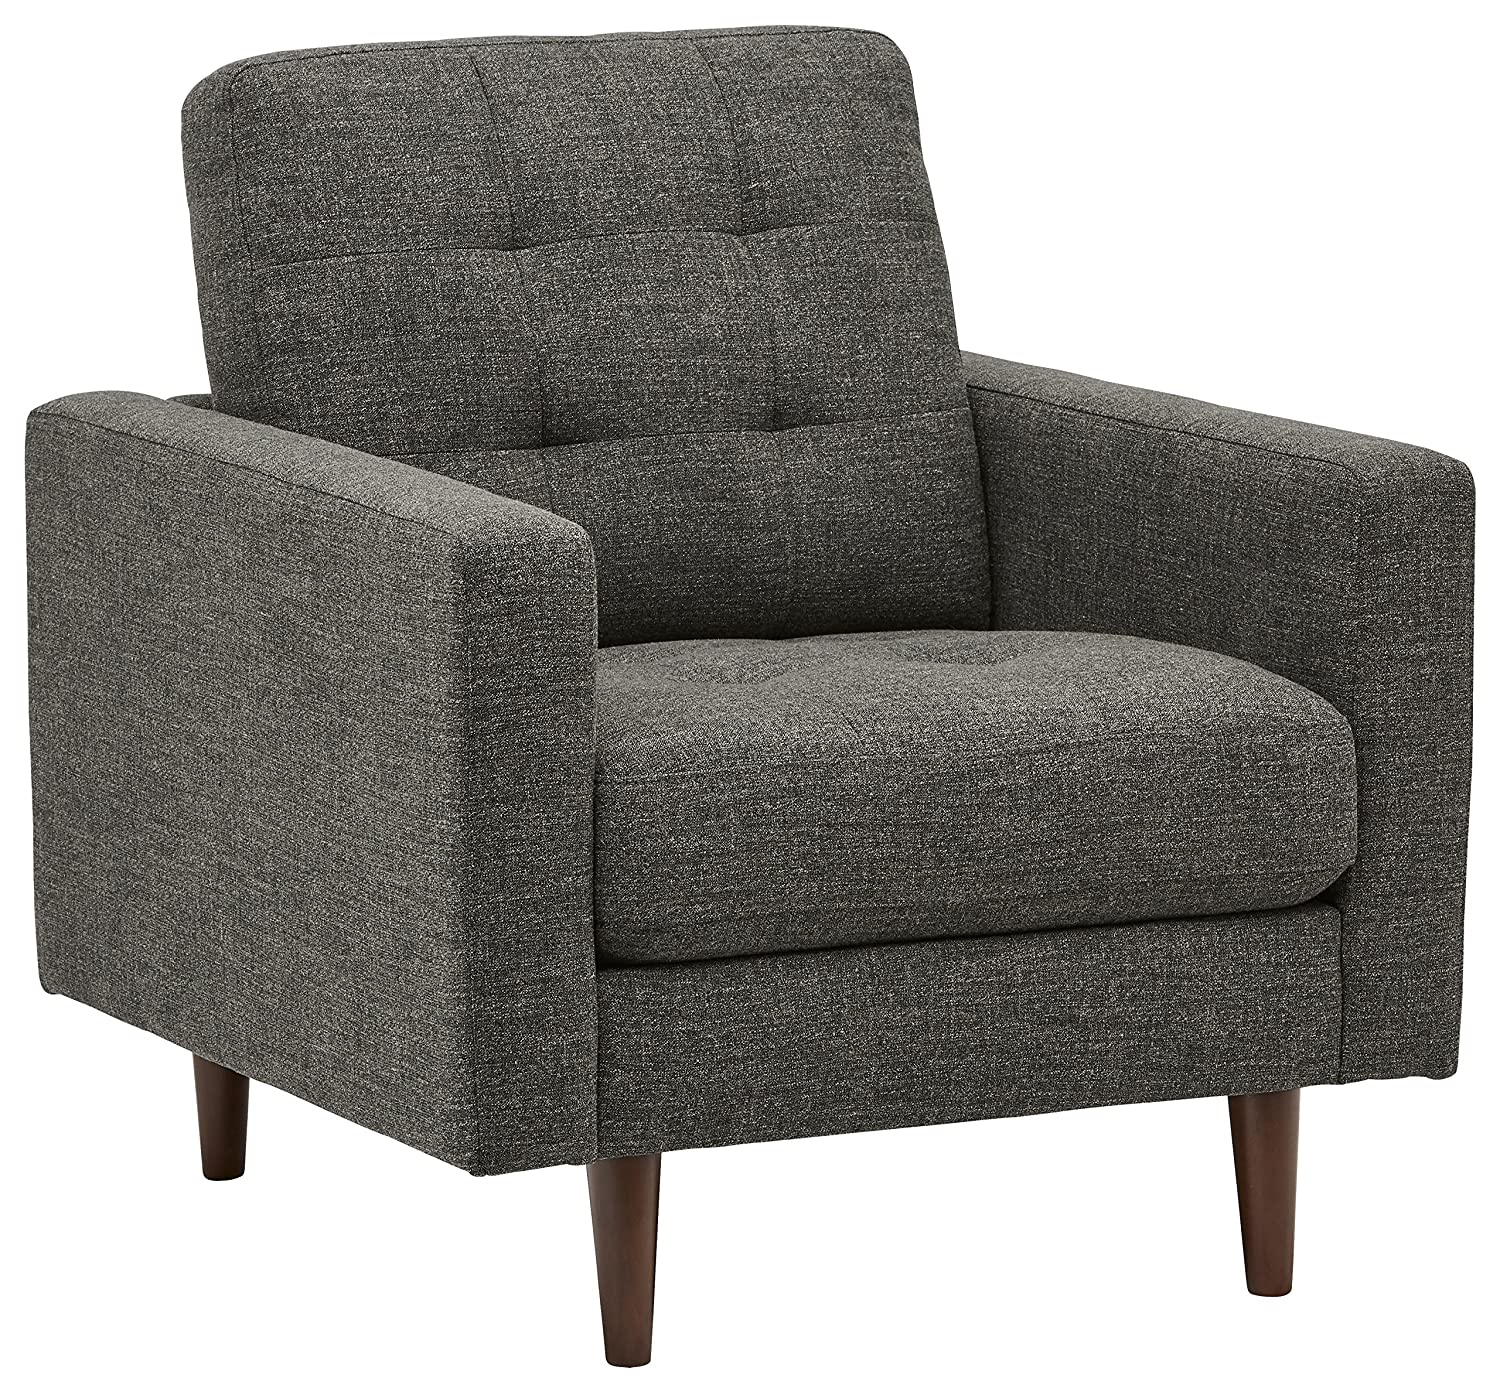 The 5 Best Accent Chairs In 2018: Reviews & Buying Guide 2